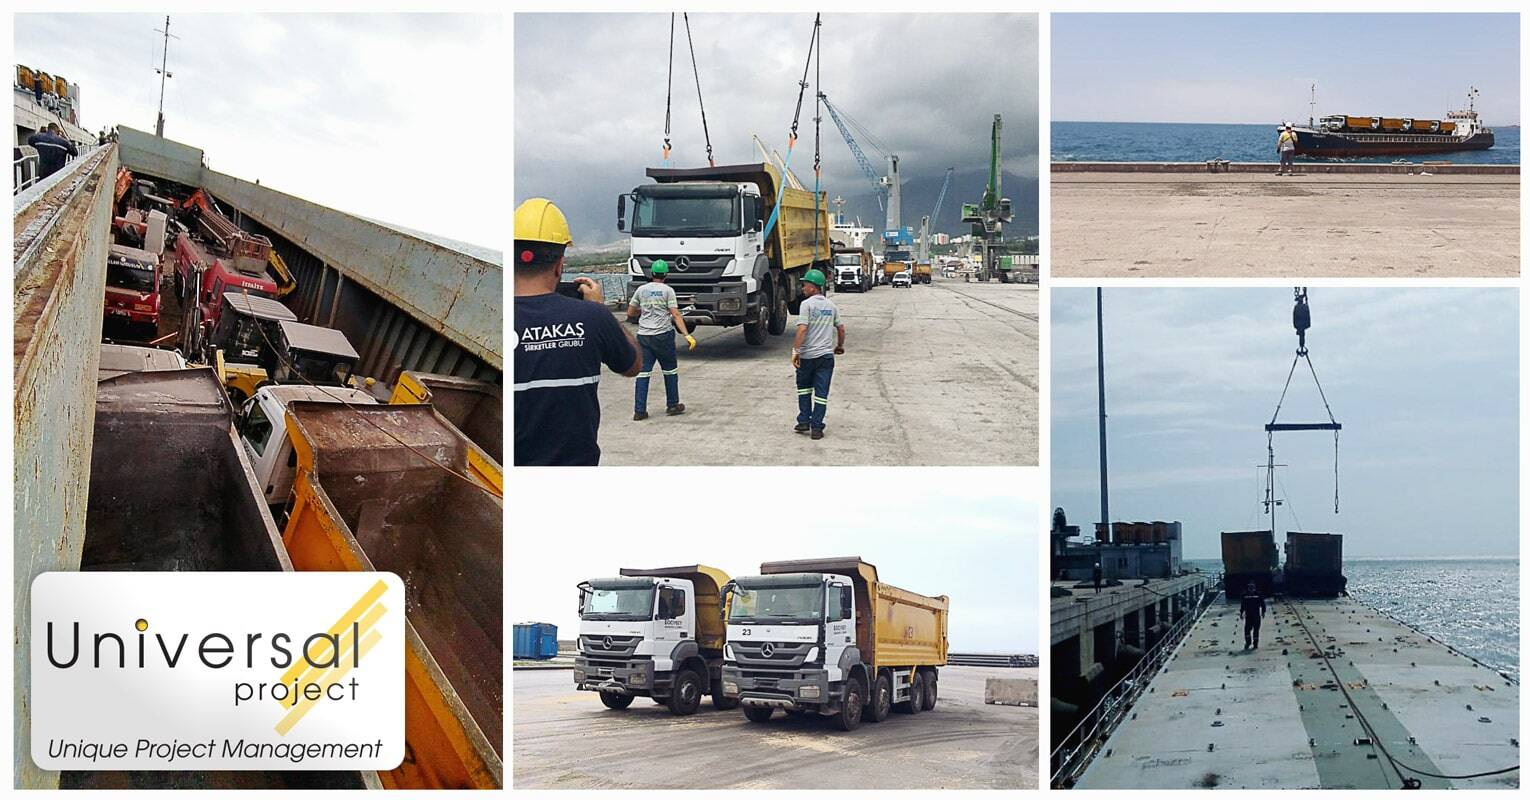 Universal Project Handled Cargo From Arrival, Discharging a Total of 21 Machinese in Under 14 Hours